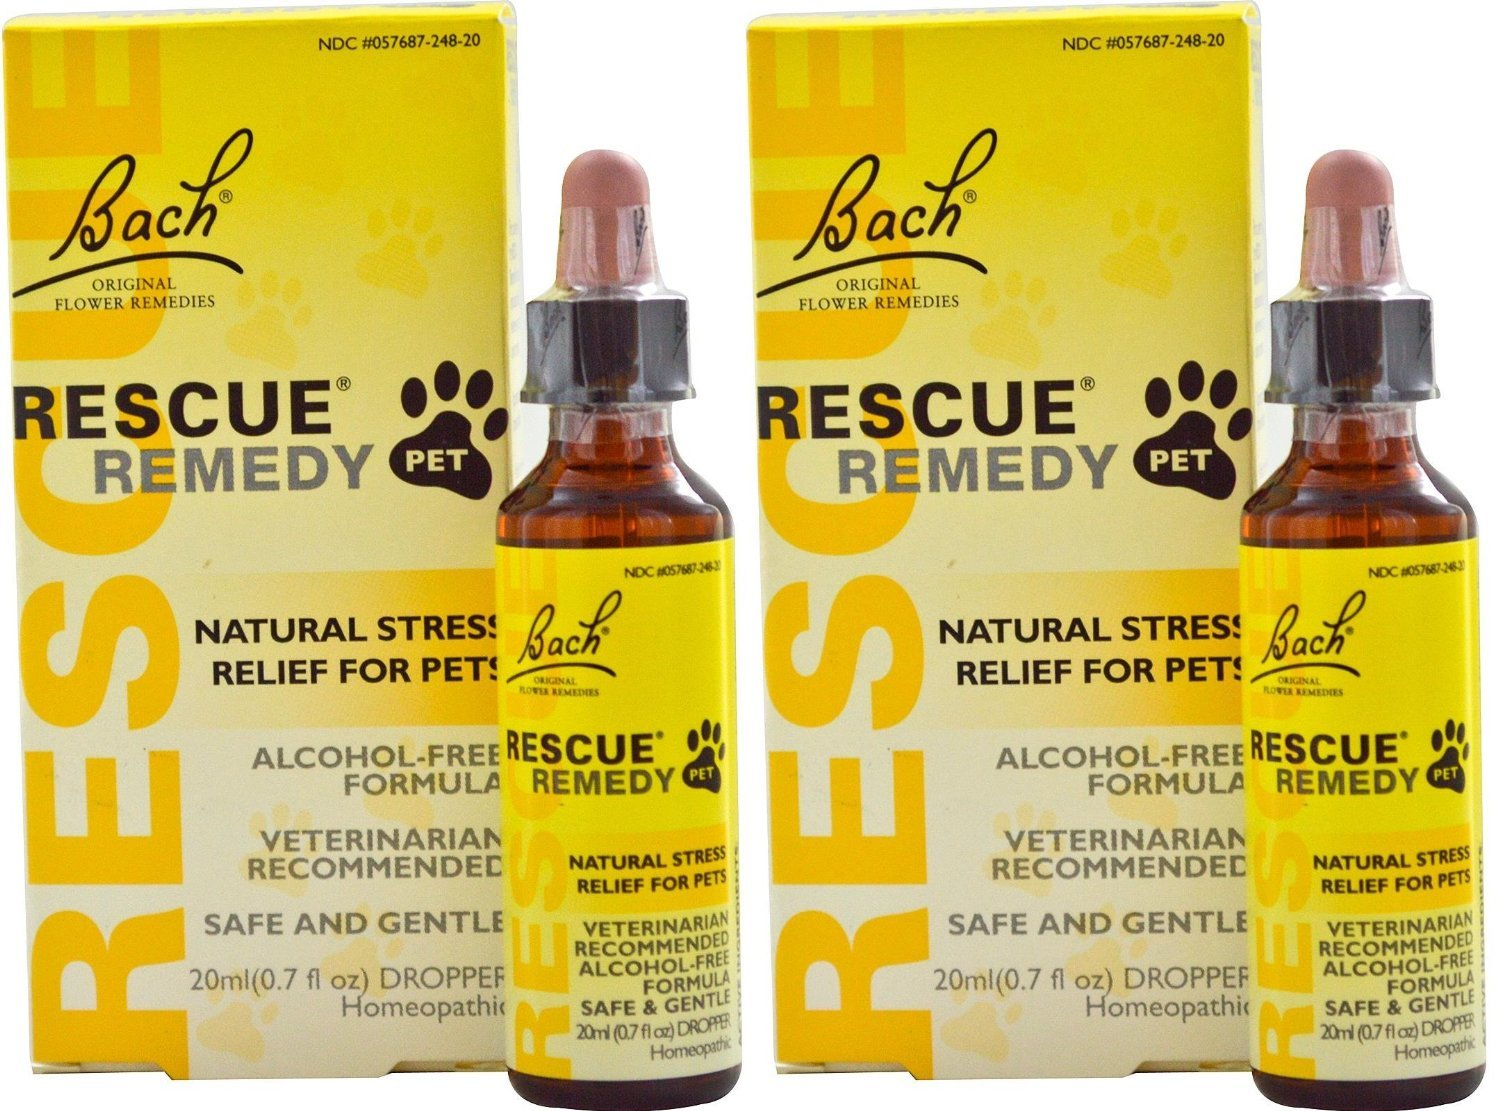 Can rescue remedy be used on dogs